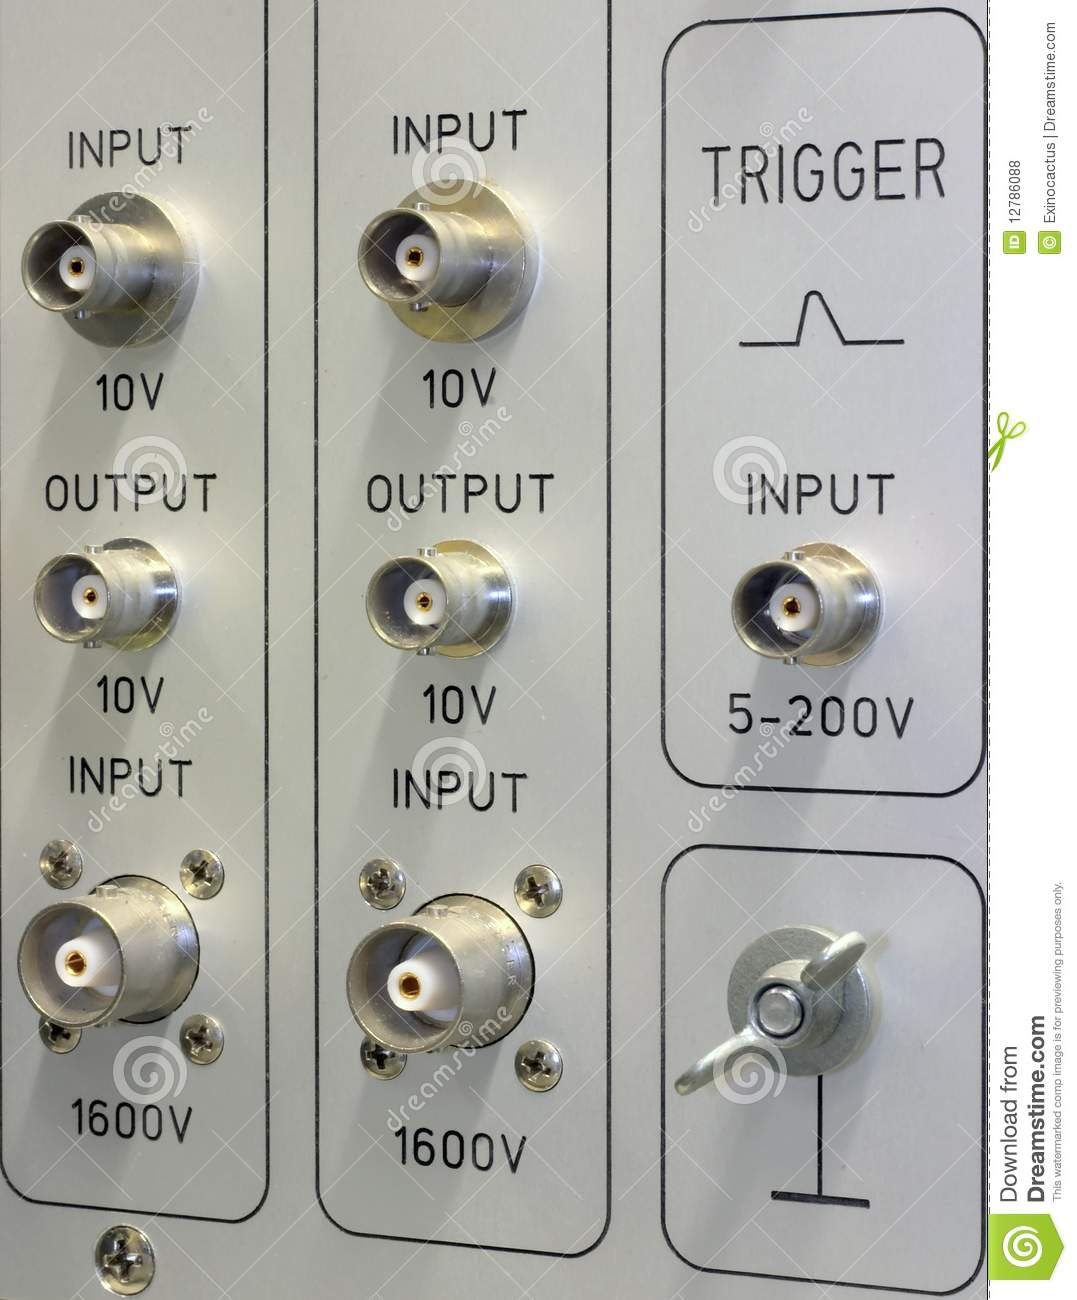 how to connect bnc connector to wire